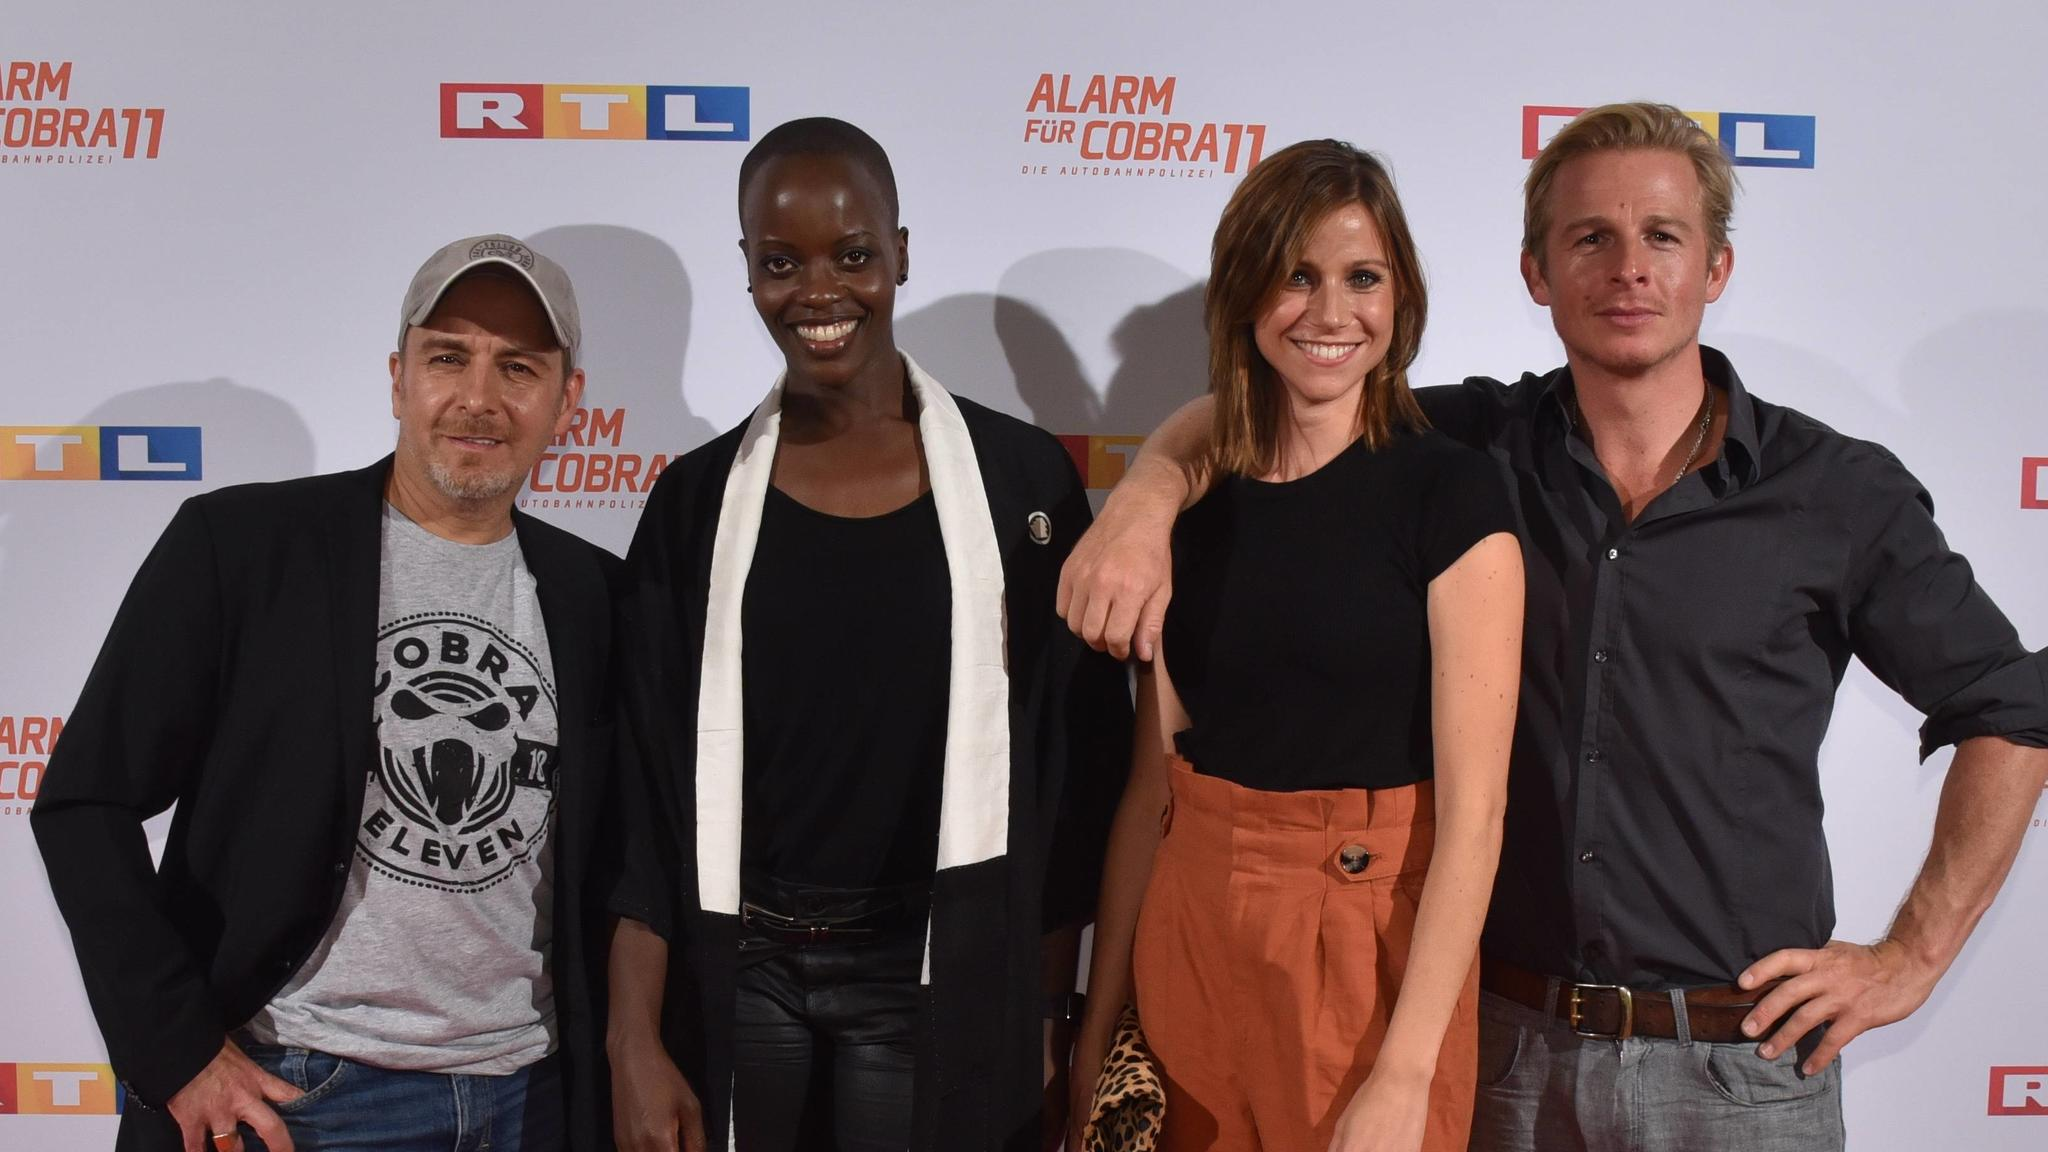 Schauspieler Erdogan Atalay, l-r, Florence Kasumba, Katrin Hess und Daniel Roesner kommt am 11.09.2018 in Köln zum exklusiven Fan Preview der Auftakt der neuen Staffel der RTL Actionserie Alarm für Cobra 11 *** Actor Erdogan Atalay for Florence Kasum